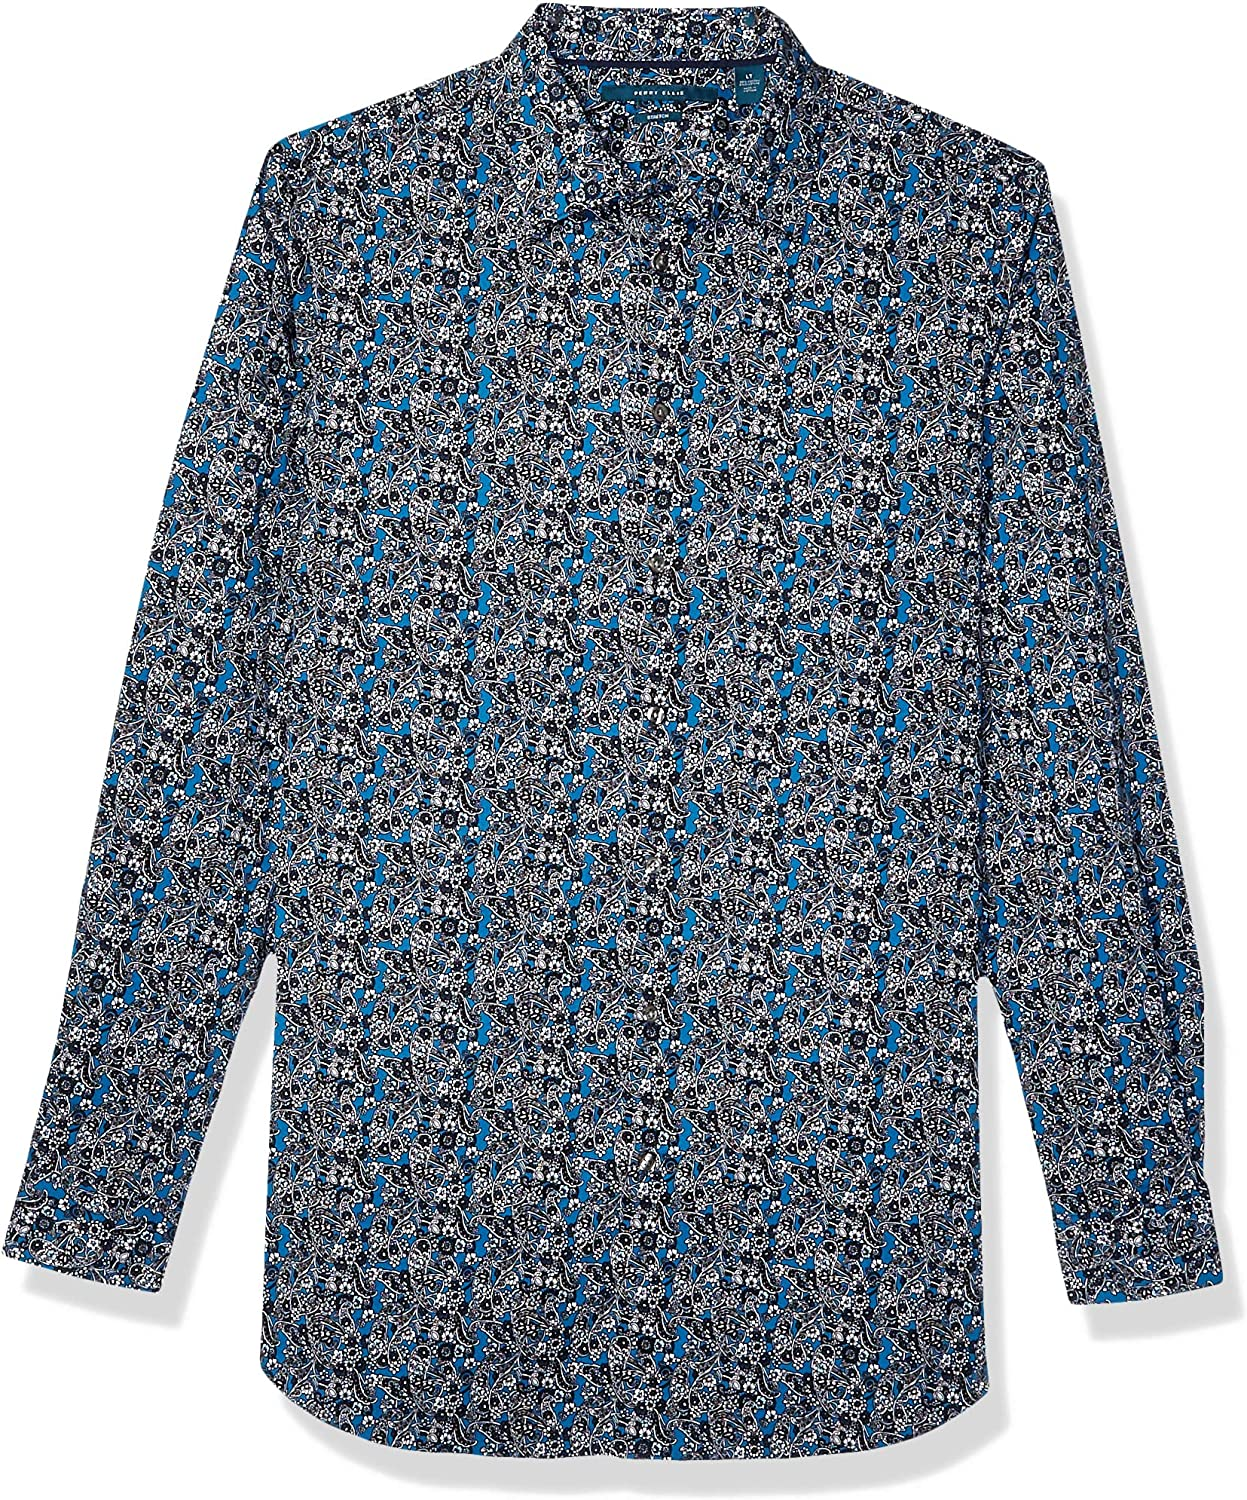 Perry Ellis Men's Big and Tall Floral Paisley Print Stretch Long Sleeve Shirt